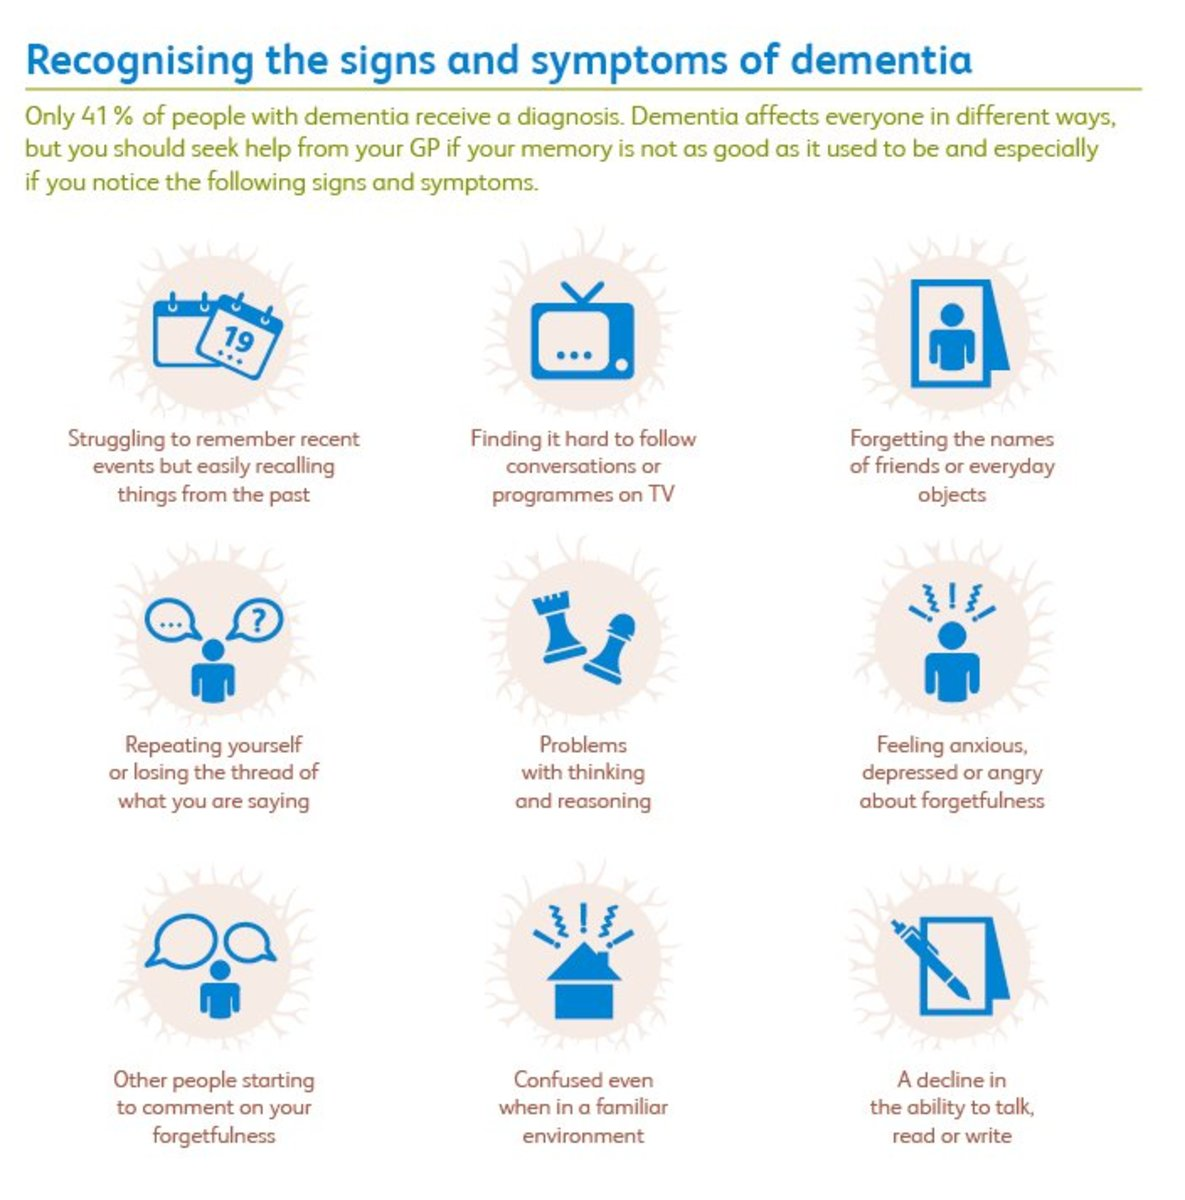 Common symptoms and Signs- a Reminder